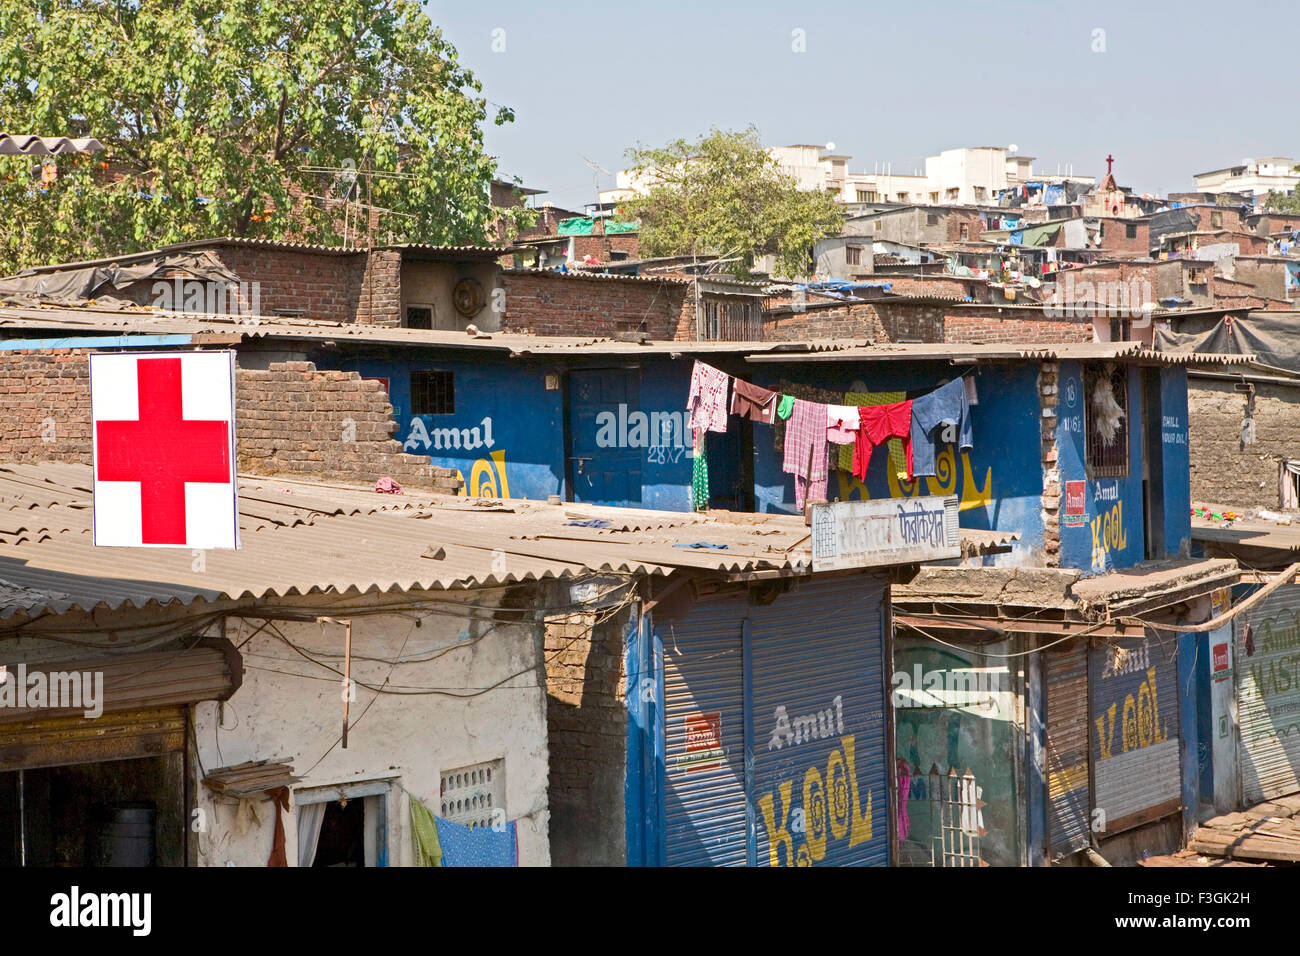 Prominent sign of doctor's clinic on roof top of slum poor living and hygienic conditions lead various diseases - Stock Image